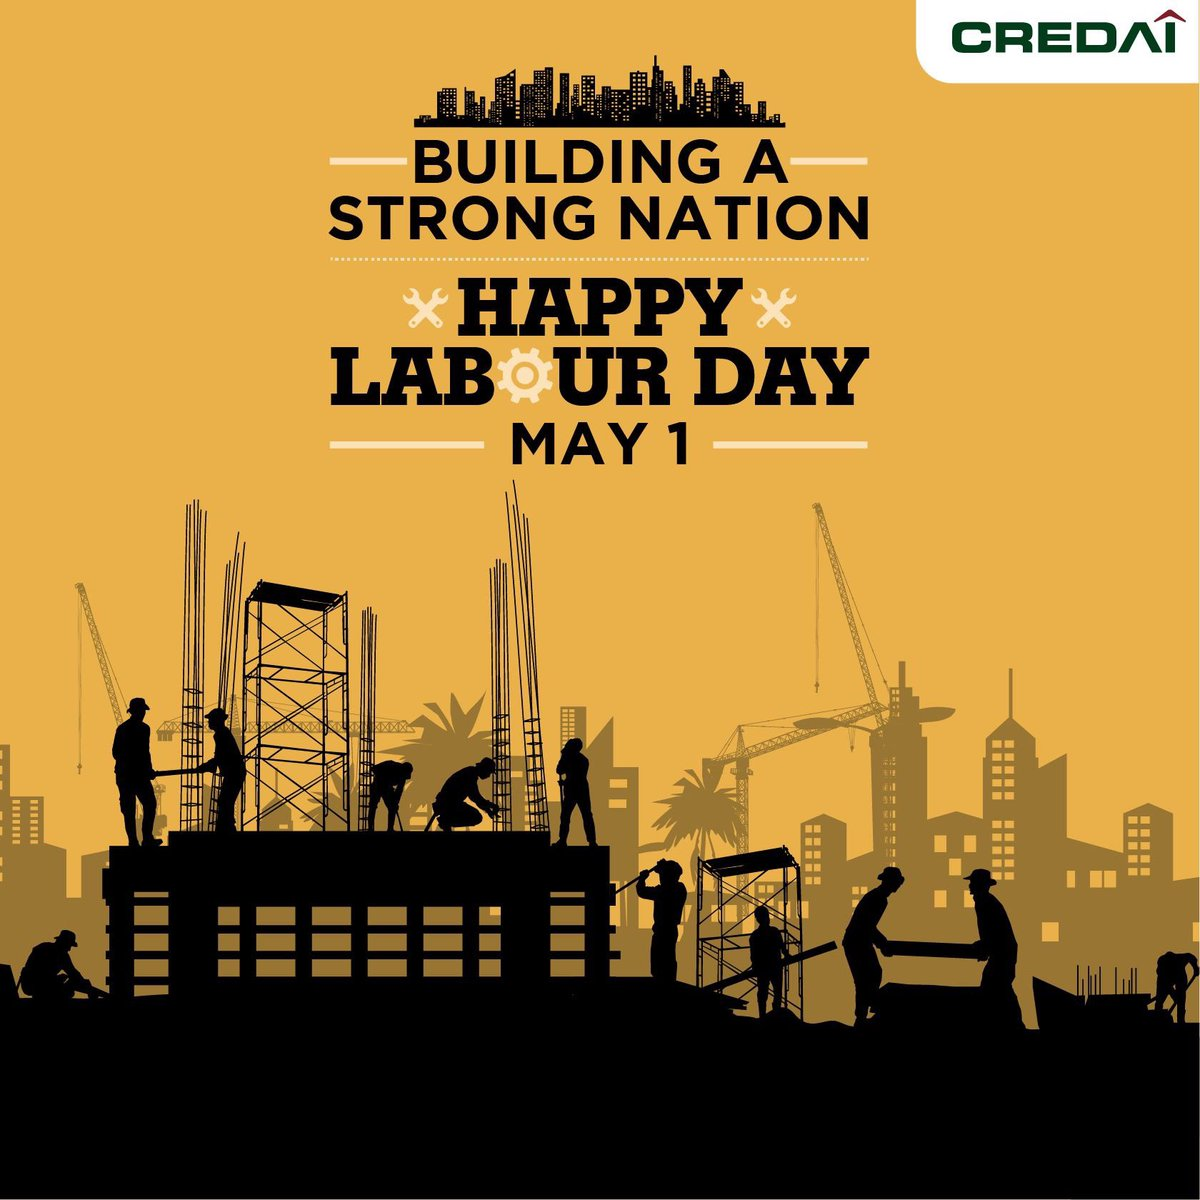 #CREDAI honors & celebrates the workmanship of all construction workers who have played an important role in building infrastructure that fuels India's economic growth and homes to fulfill the dreams of our fellow citizens. #LabourDay #BadhtiKushalta #PragatiKiAur https://t.co/j1EwsMunk7